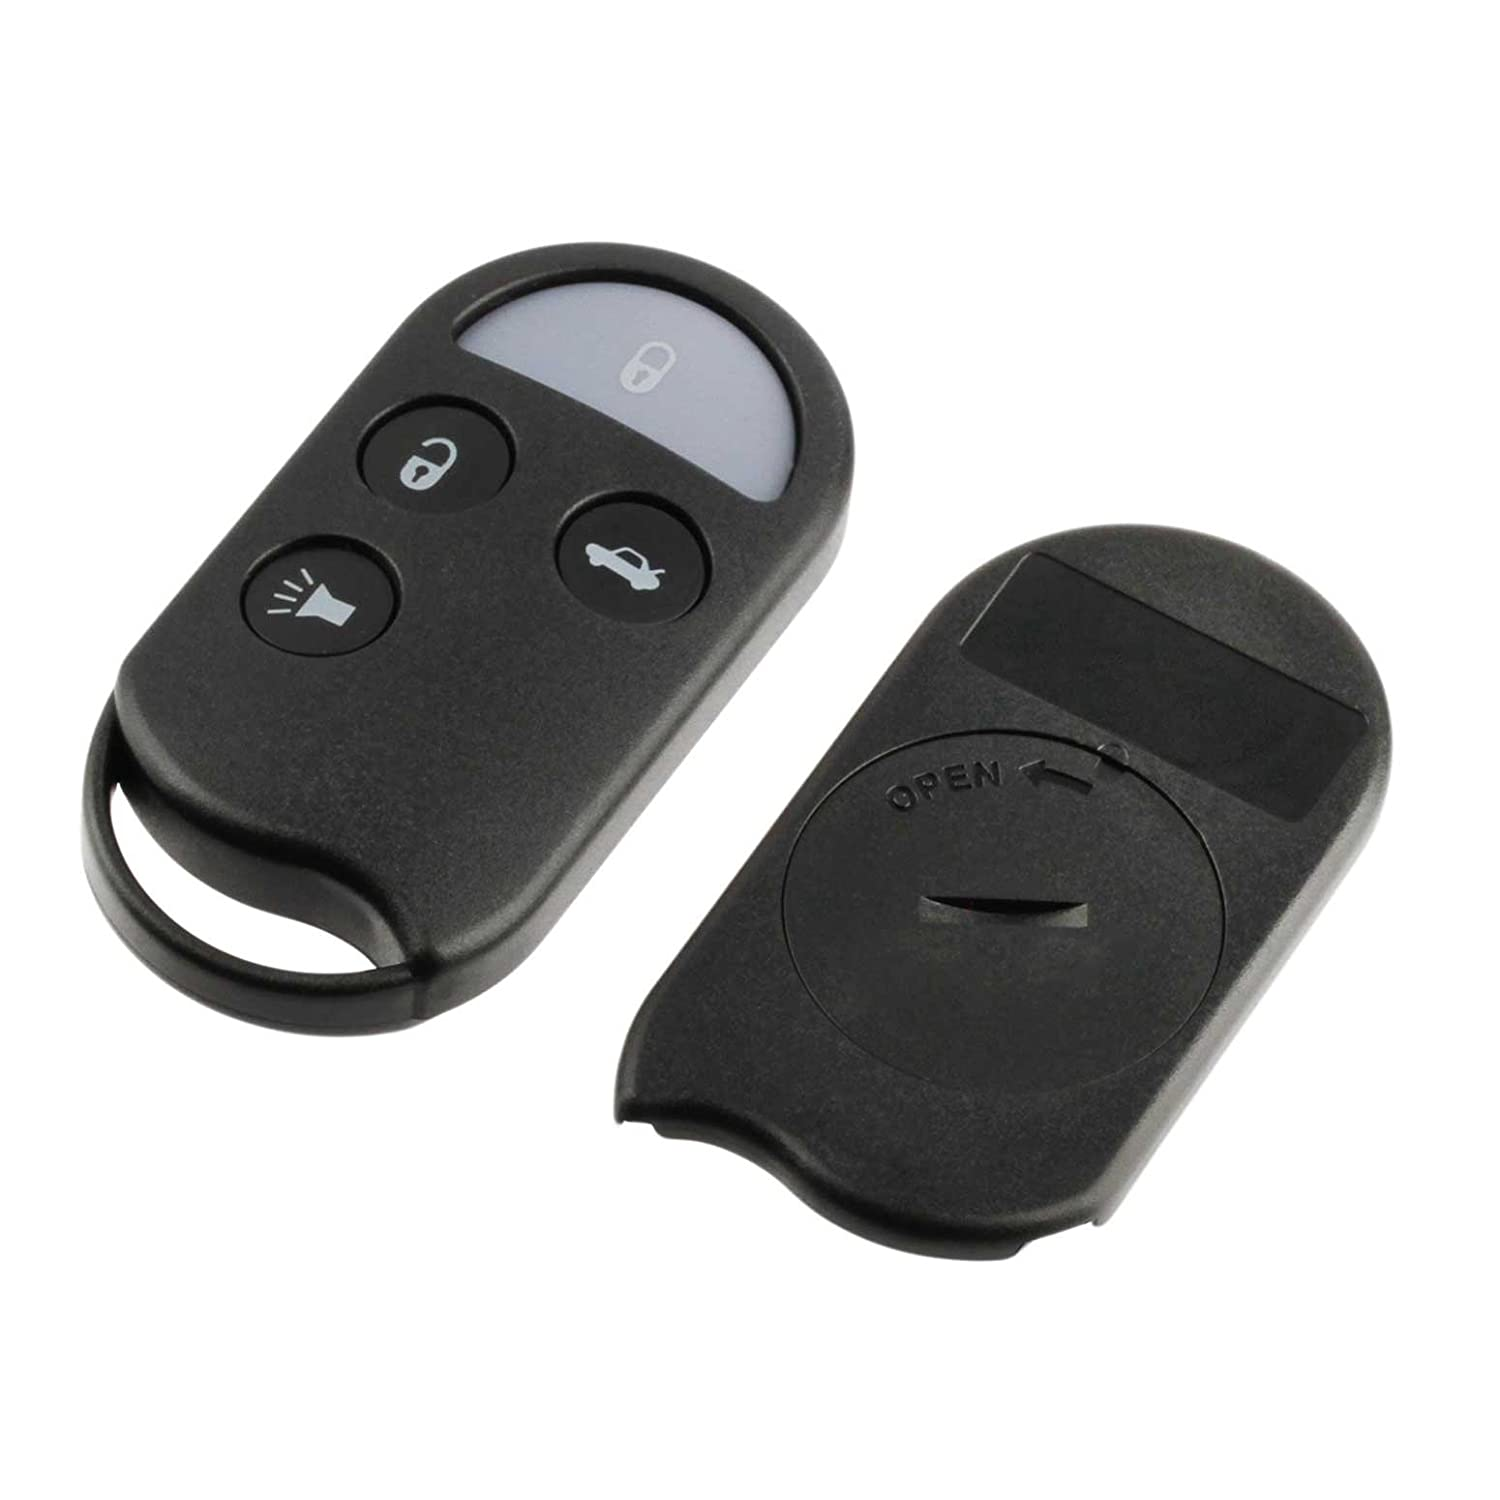 2 Car Key Fob Shell Case Pad For 2002 2003 2004 2005 2006 2007 Buick Rendezvous